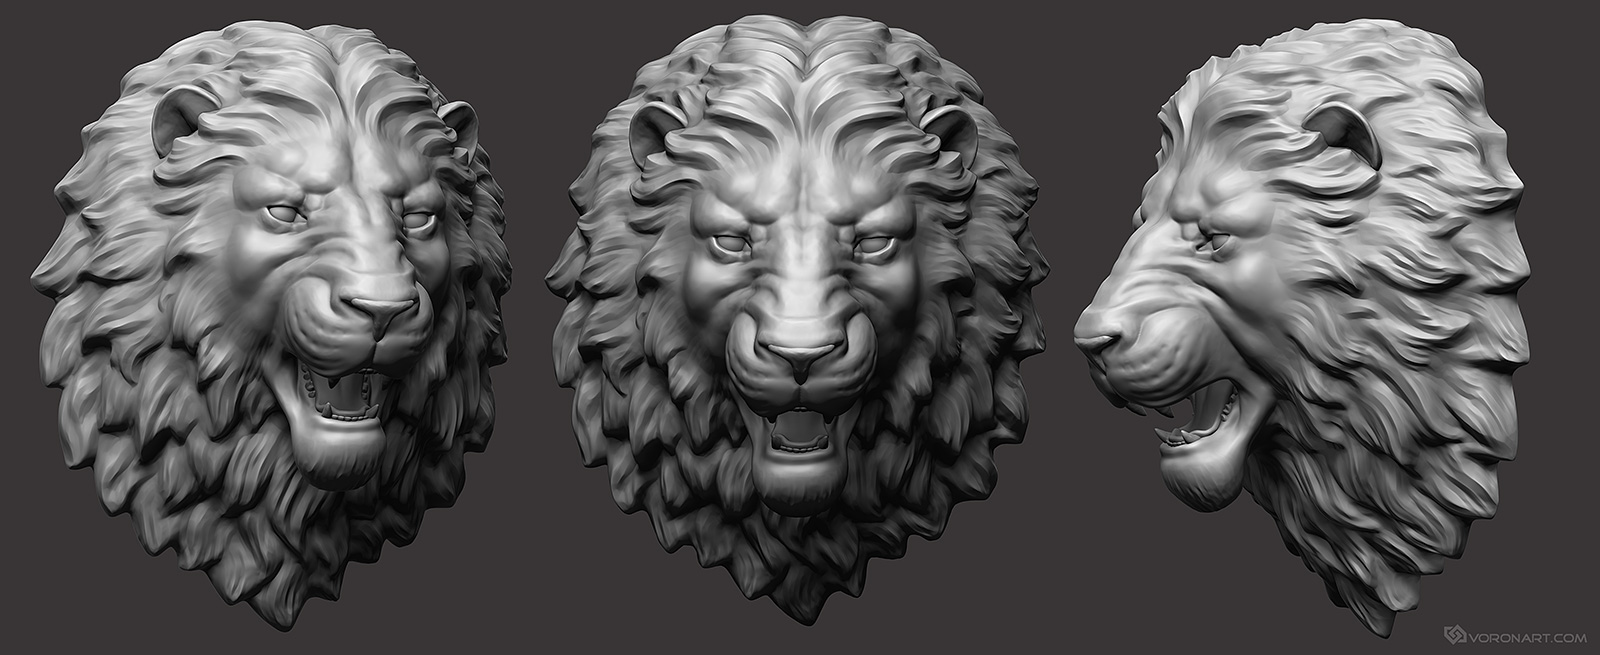 3d-lion-head-sculpture-01.jpg